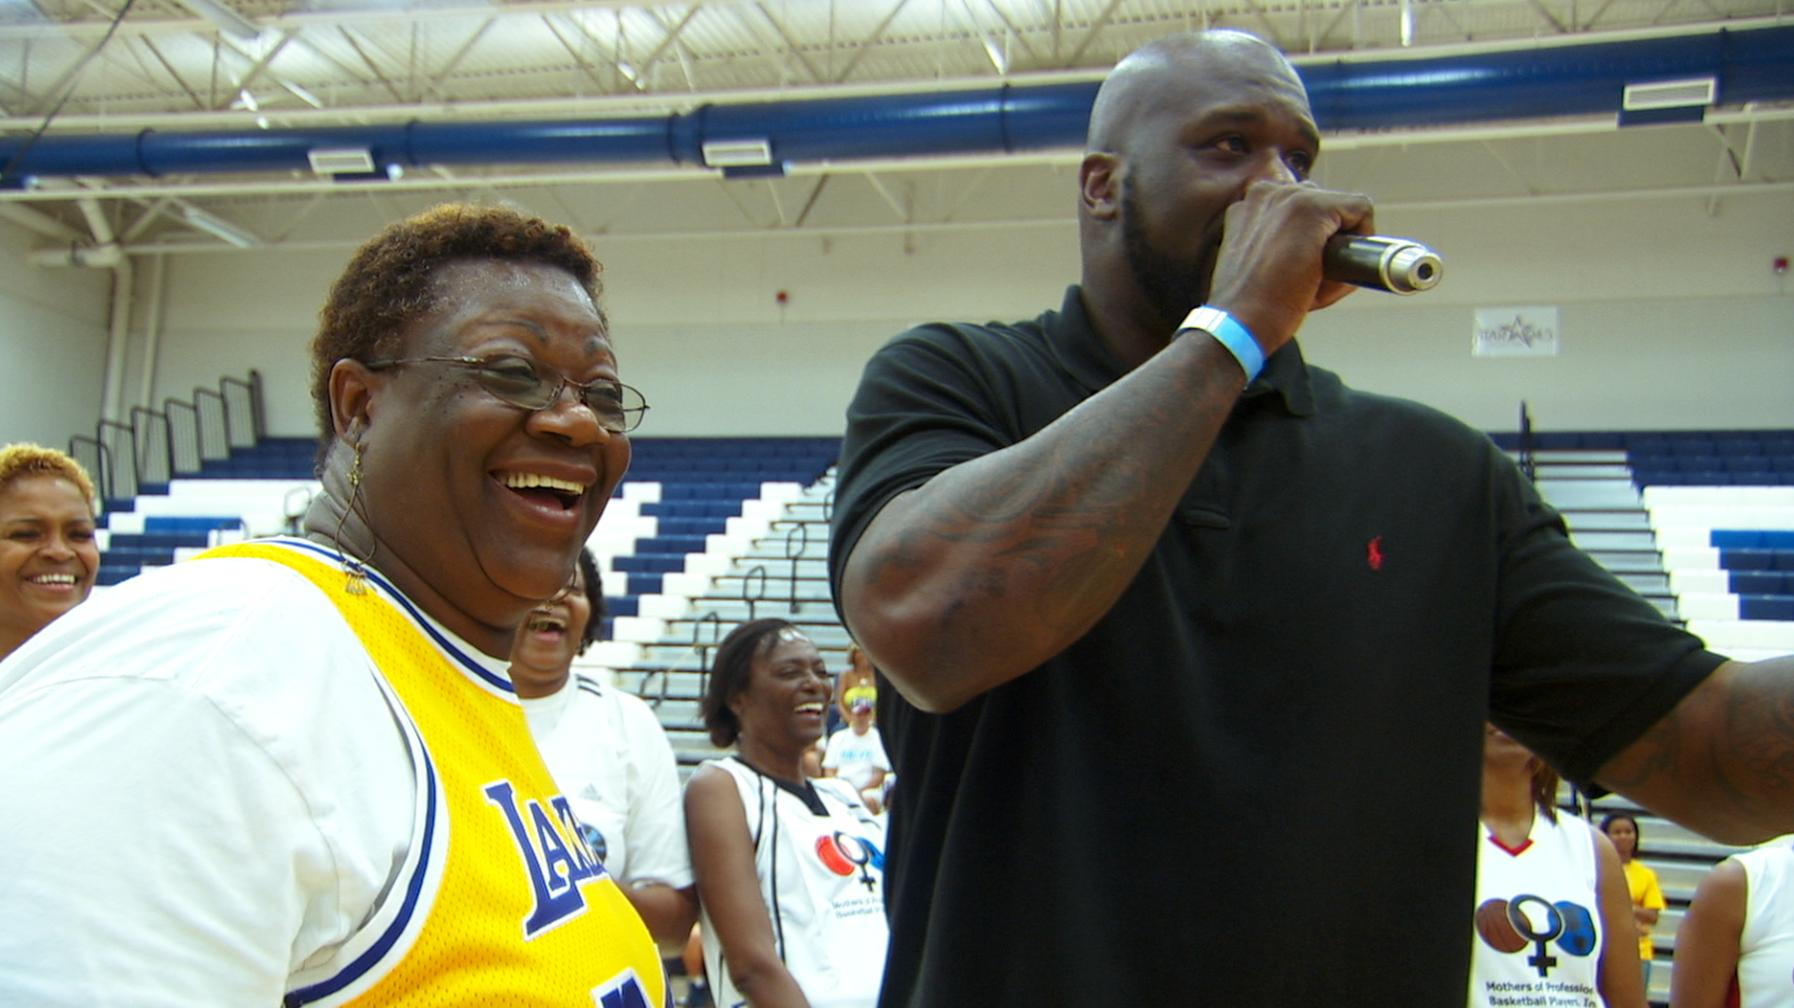 image 3 Miami Crew shoots NBA Moms vs NFL Moms in basketball with Shaq!